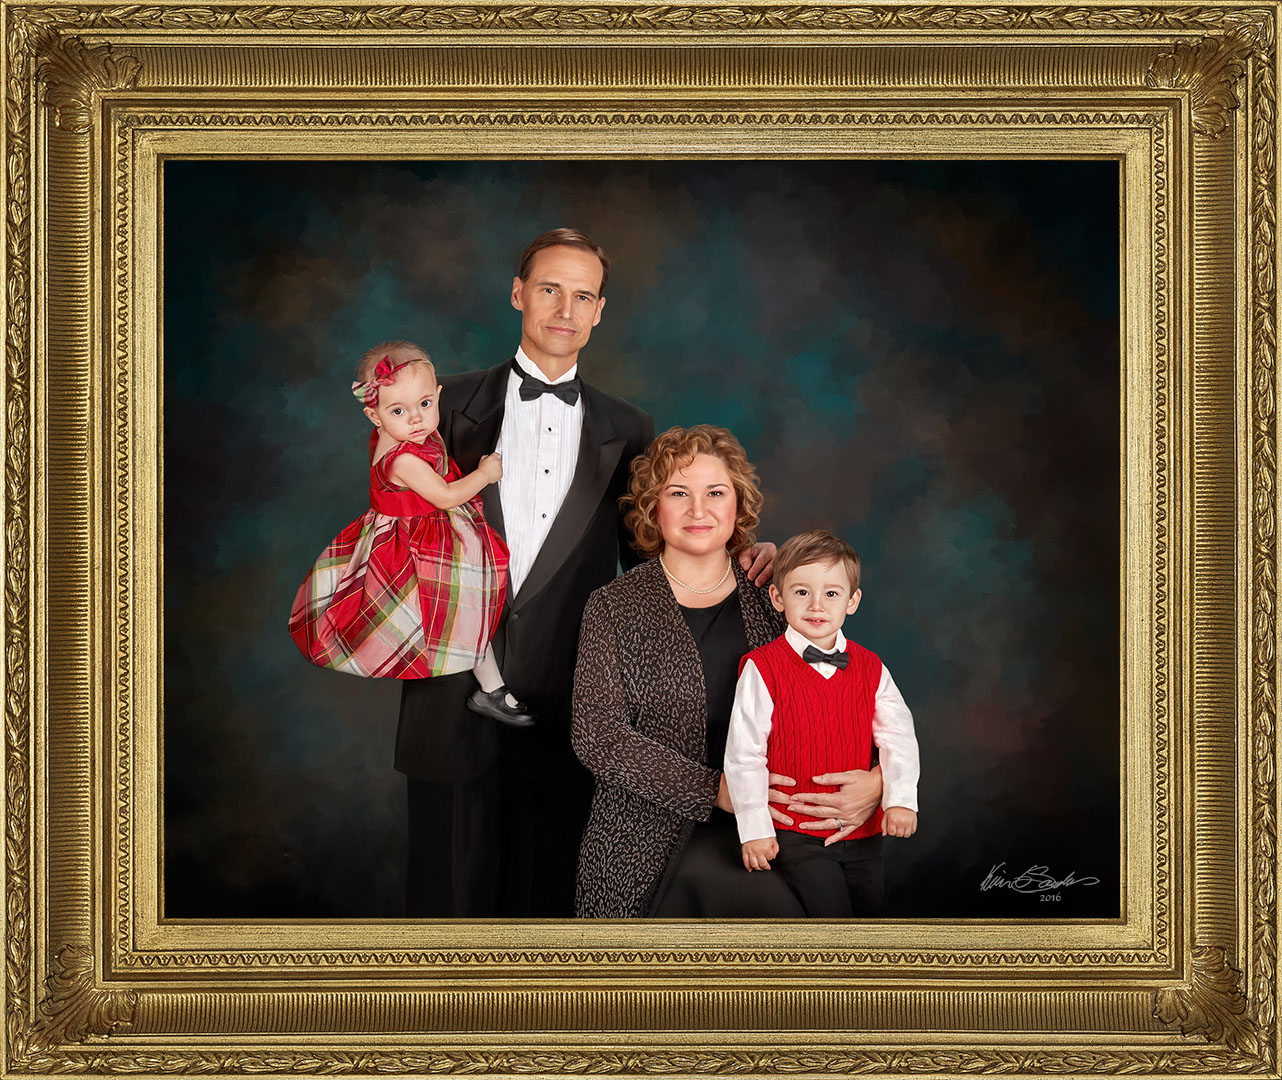 Heirloom Family Portrait